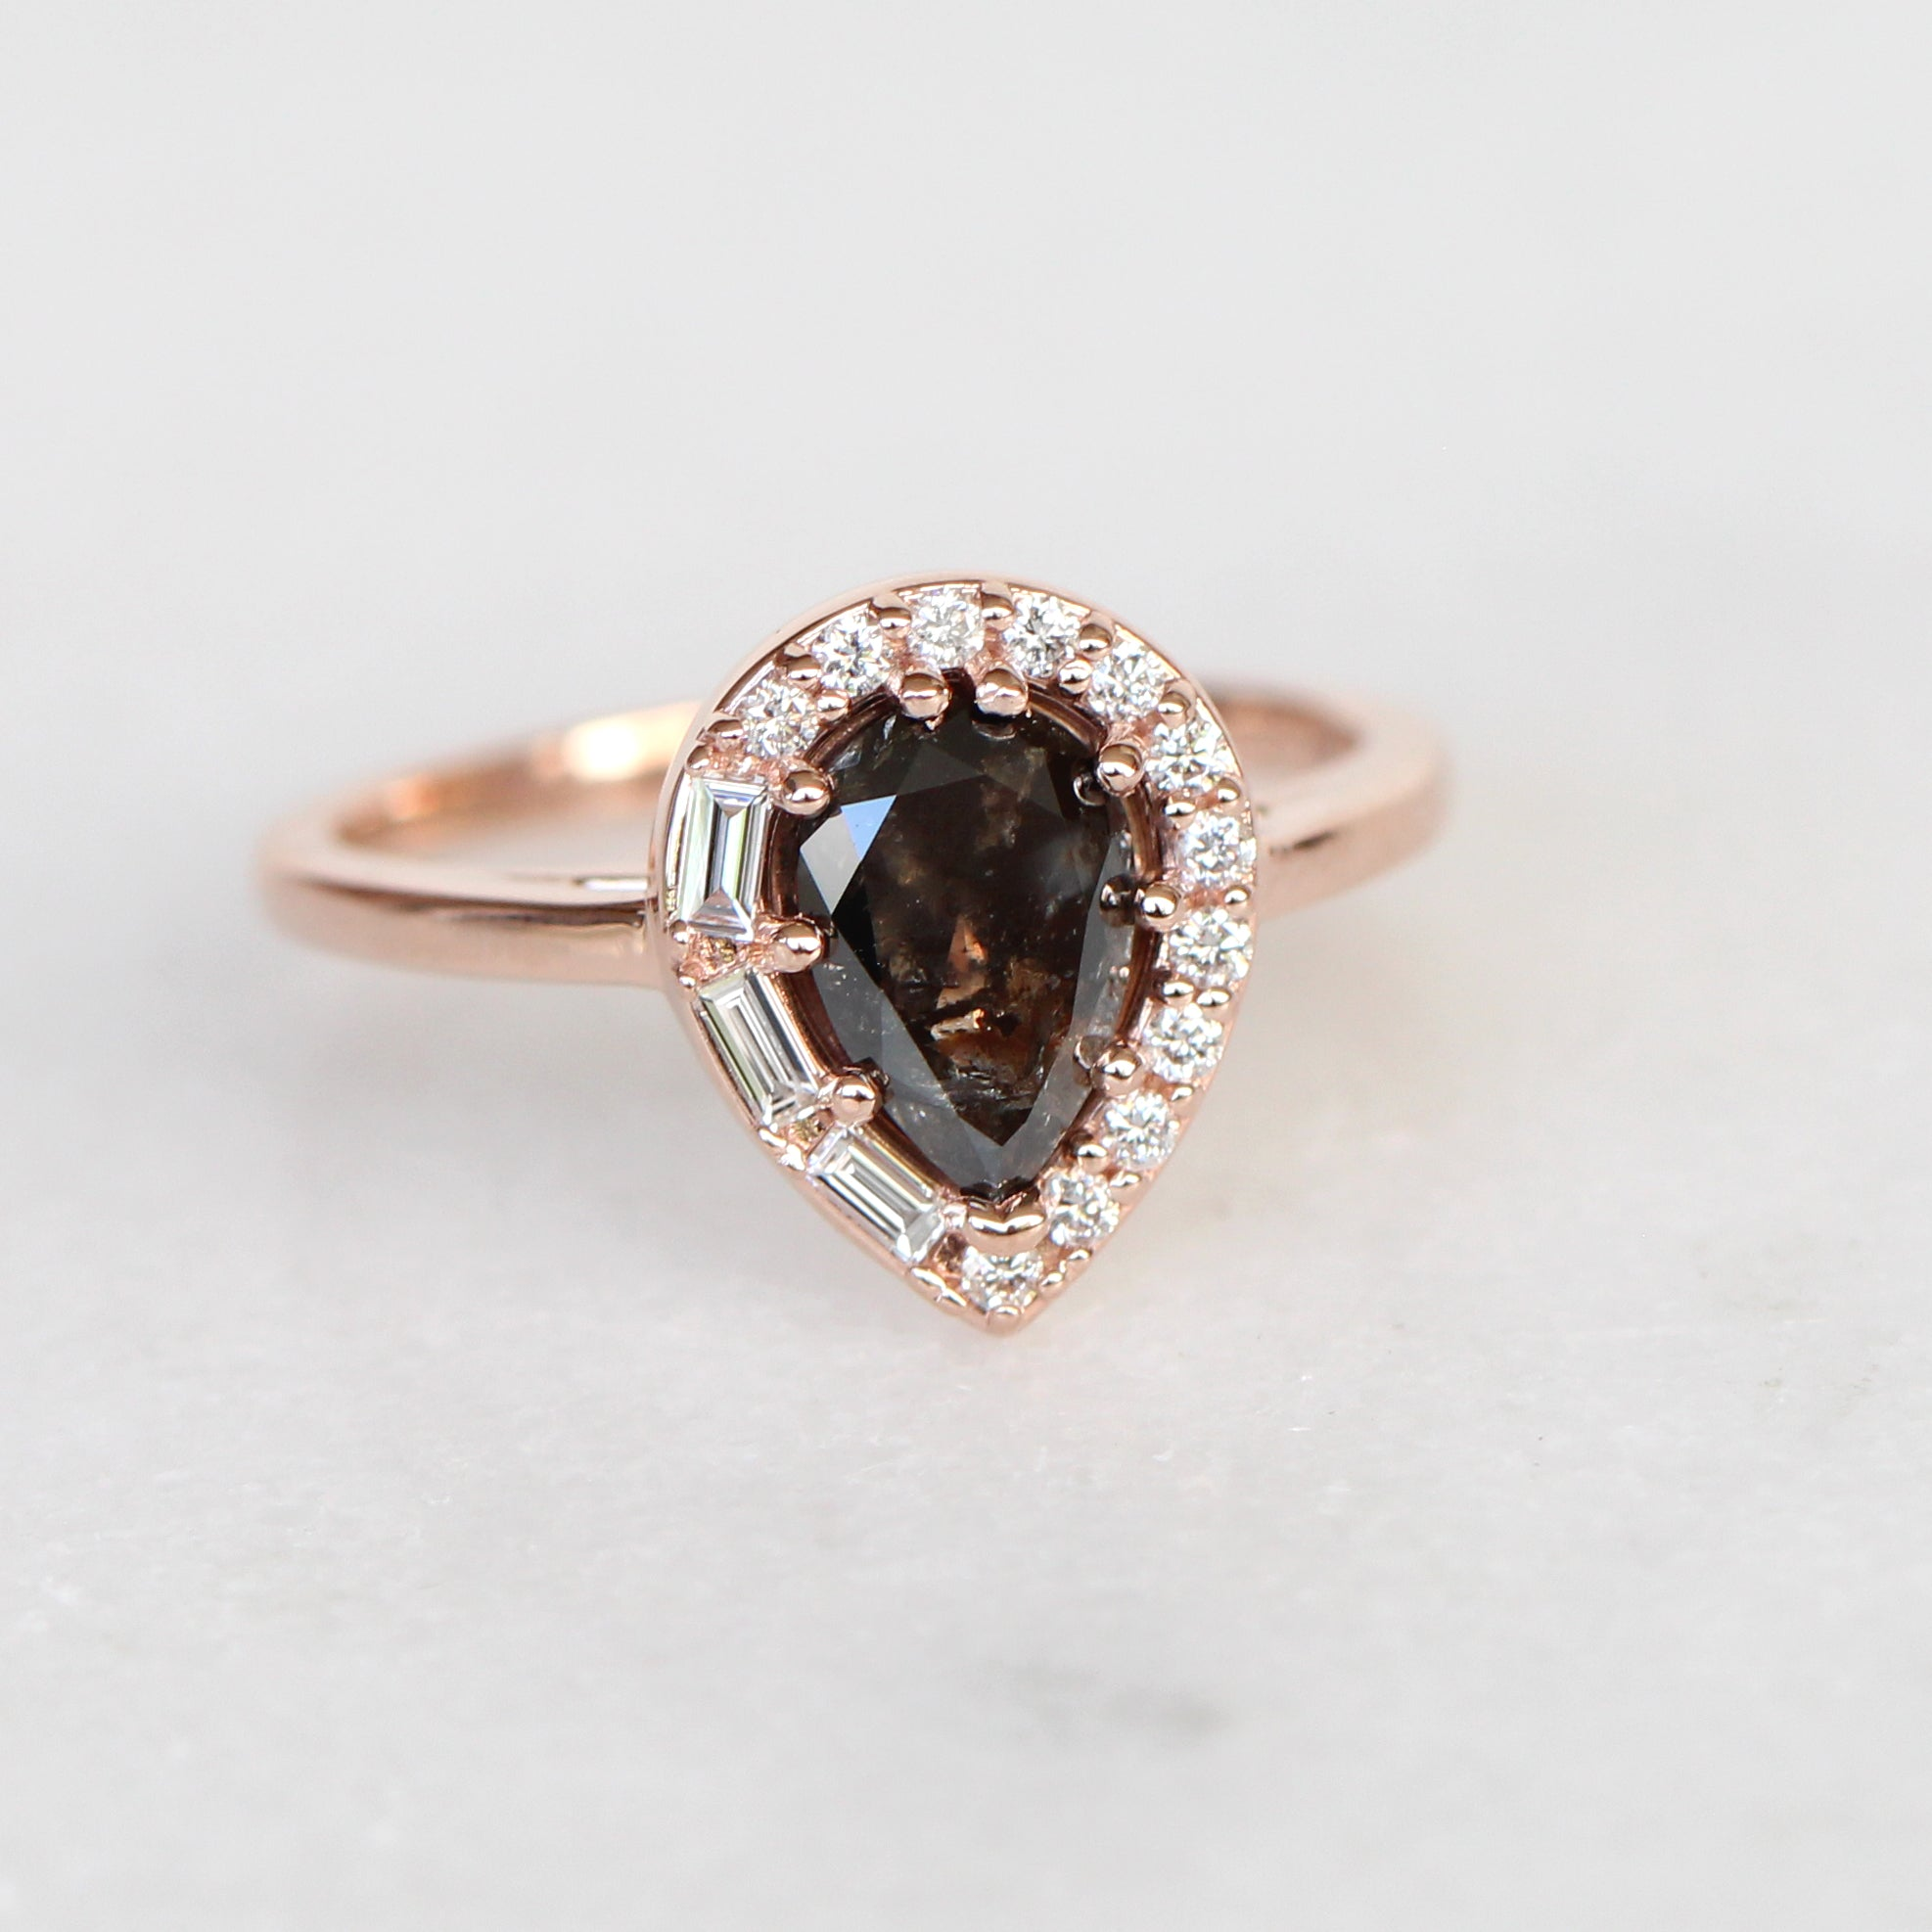 Collins ring with 1.12 carat natural brilliant pear celestial diamond in 10k rose gold - ready to size and ship - Celestial Diamonds ® by Midwinter Co.